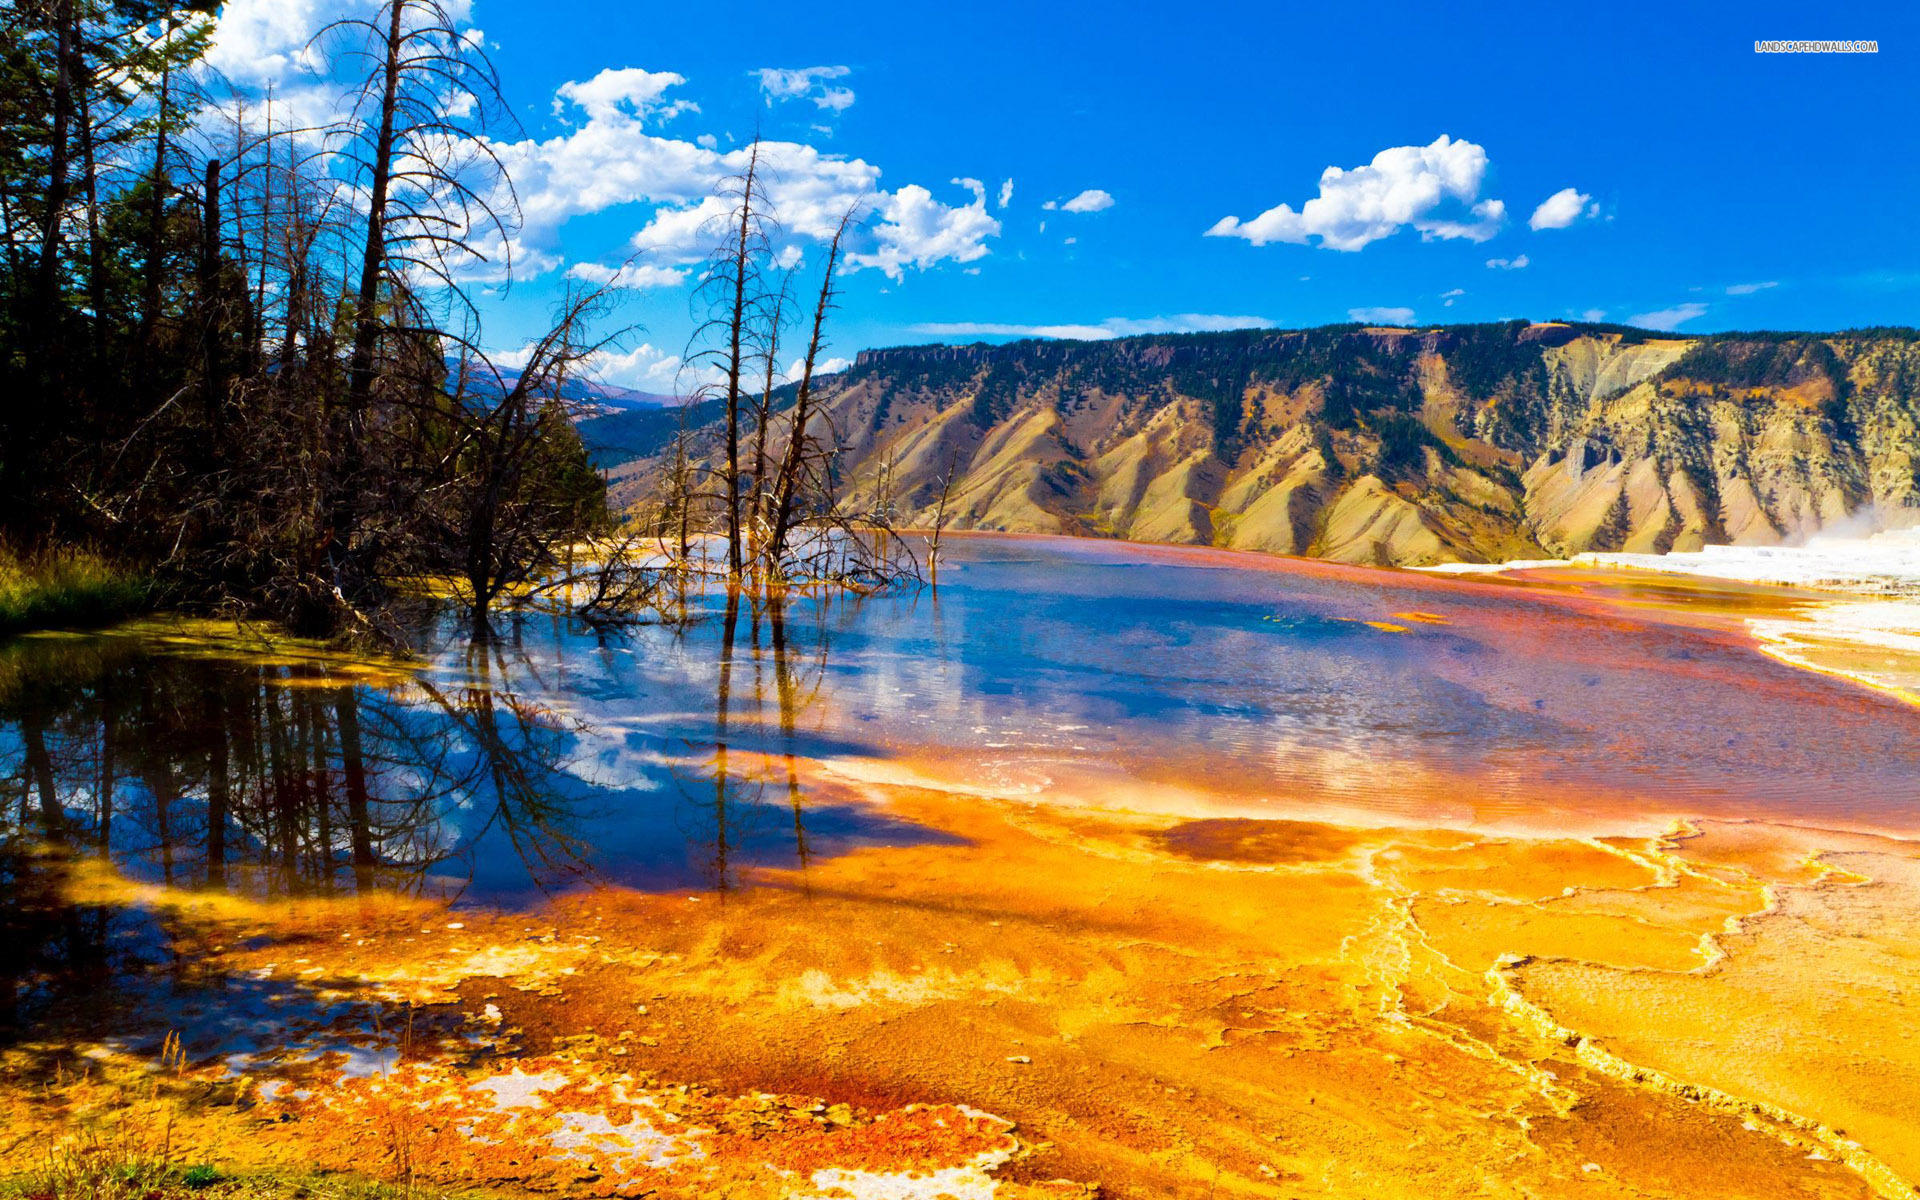 national park wallpapers 49571 nature yellowstone national park 1920x1200